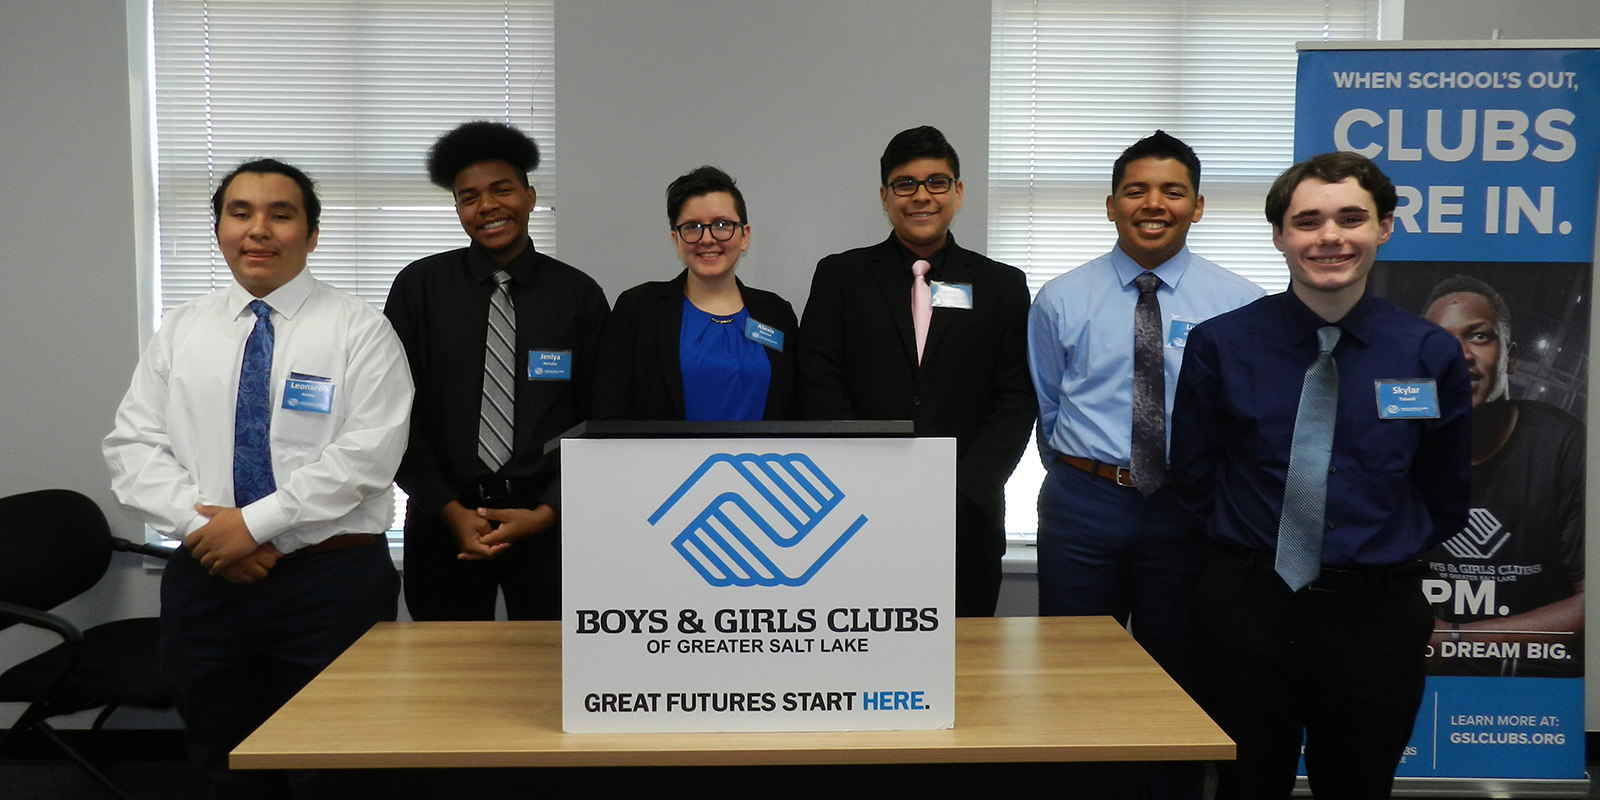 MasterControl Supports 'Youths of the Year' At Boys & Girls Club Gala